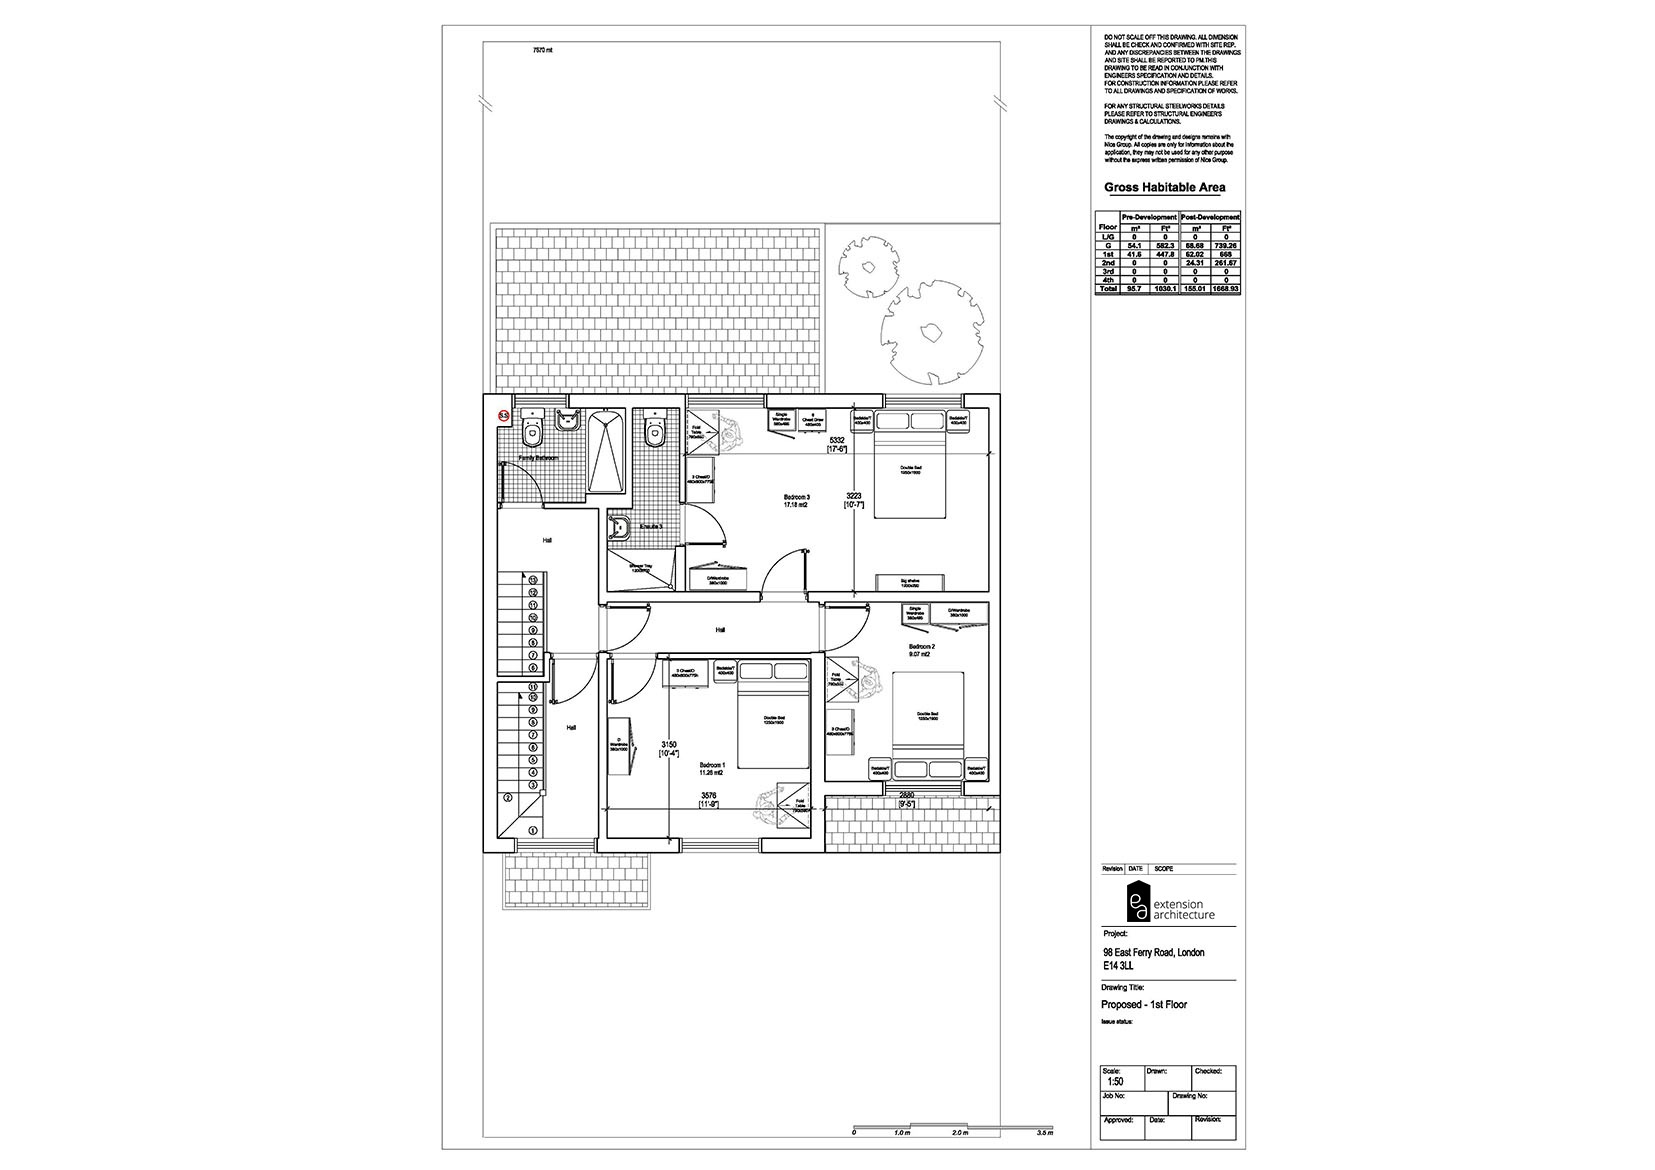 RESIDENTIAL 98 EFR proposed-double storey extension...page 02